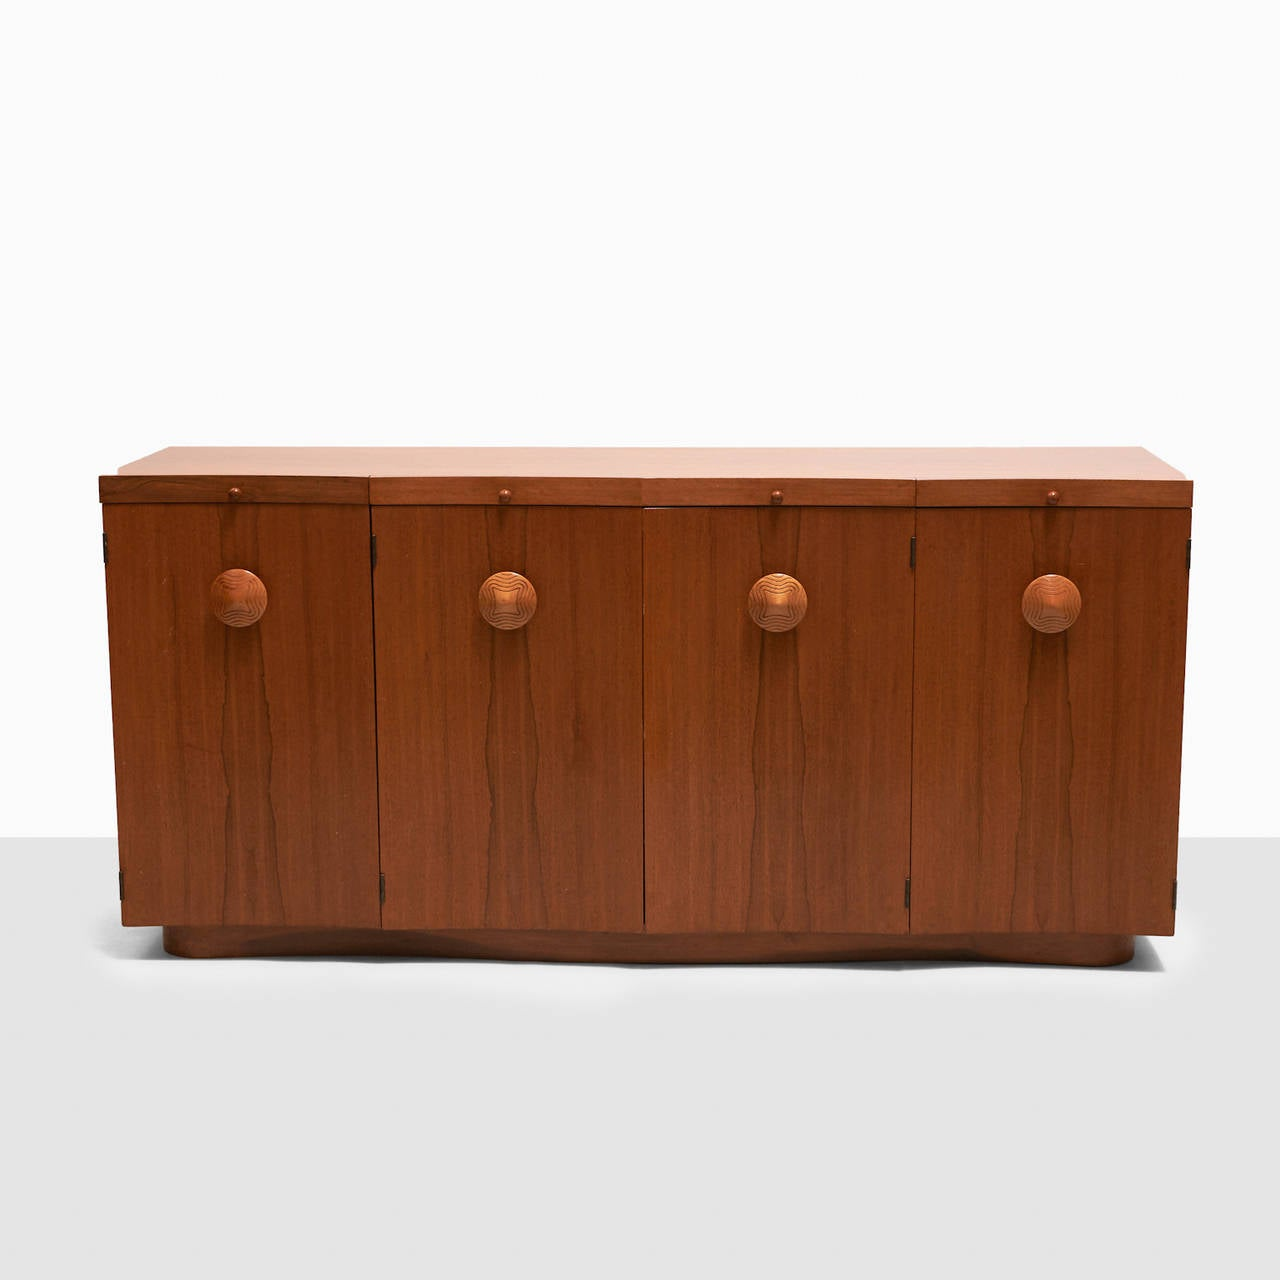 """Gilbert Rohde sideboard from the """"Paldao"""" series. Features a pedestal base, pull-out cutting surfaces and four cabinets with carved nobs. Interior has eight pull-out drawers. Manufactured by Herman Miller."""